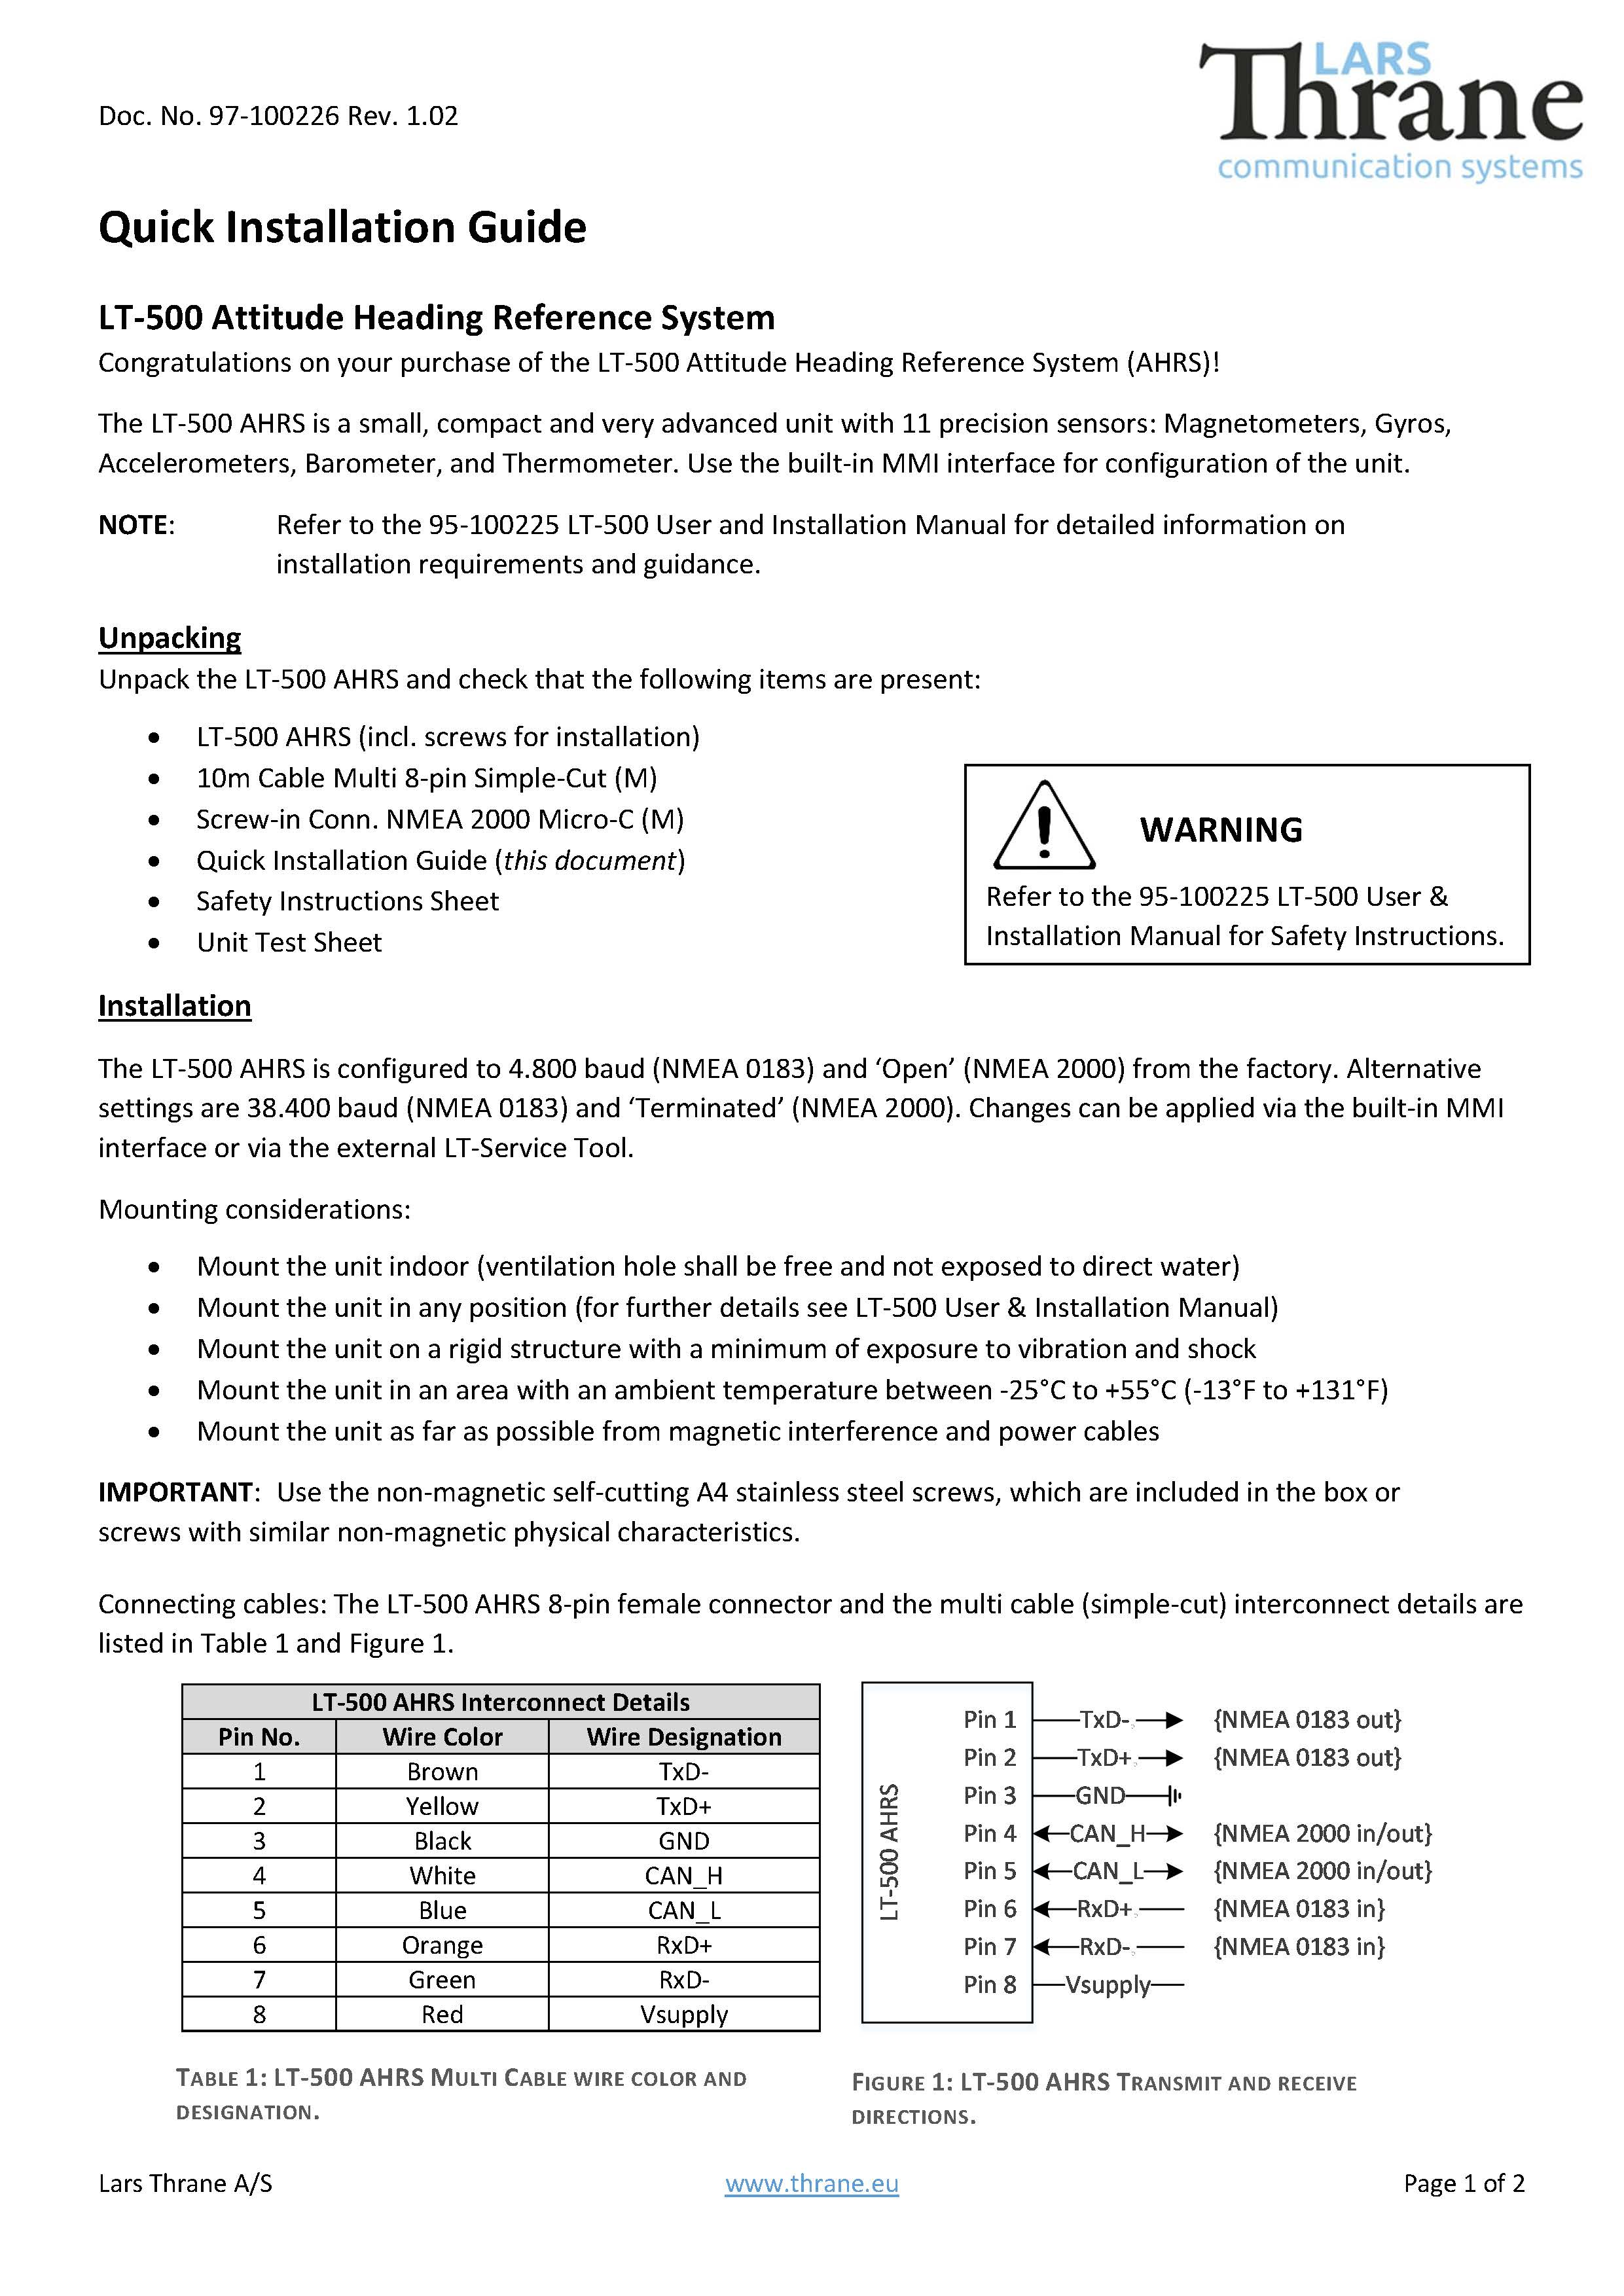 lt 500 quick installation guide forside Page 1